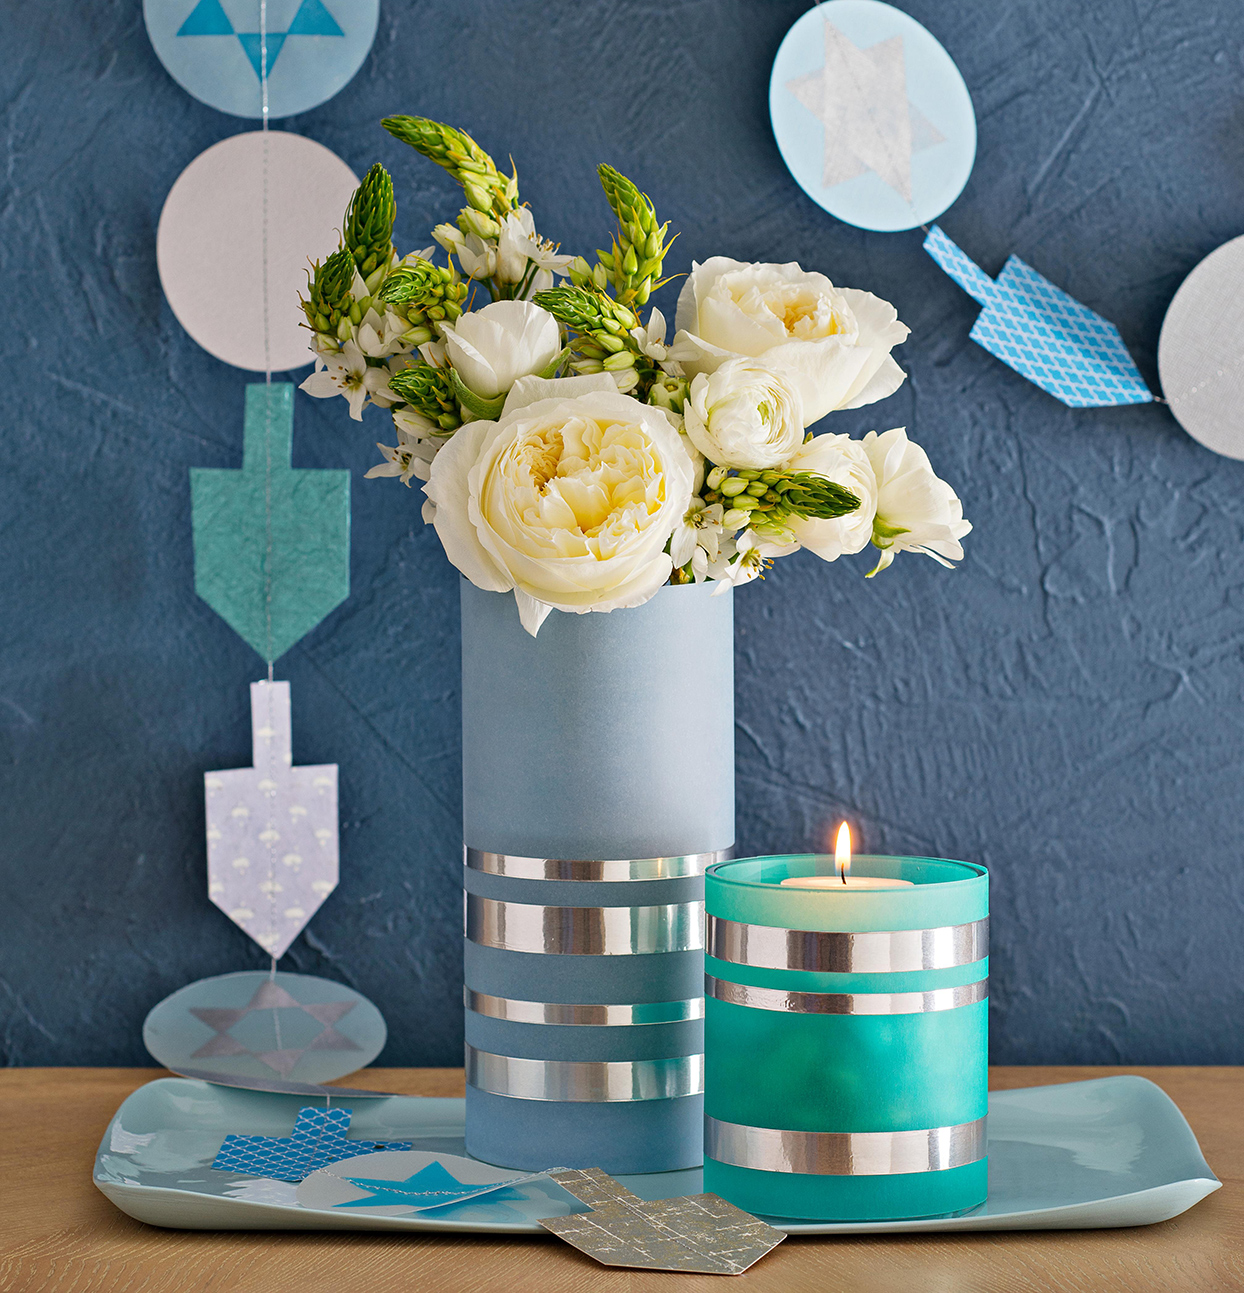 blue candle centerpiece with white flowers